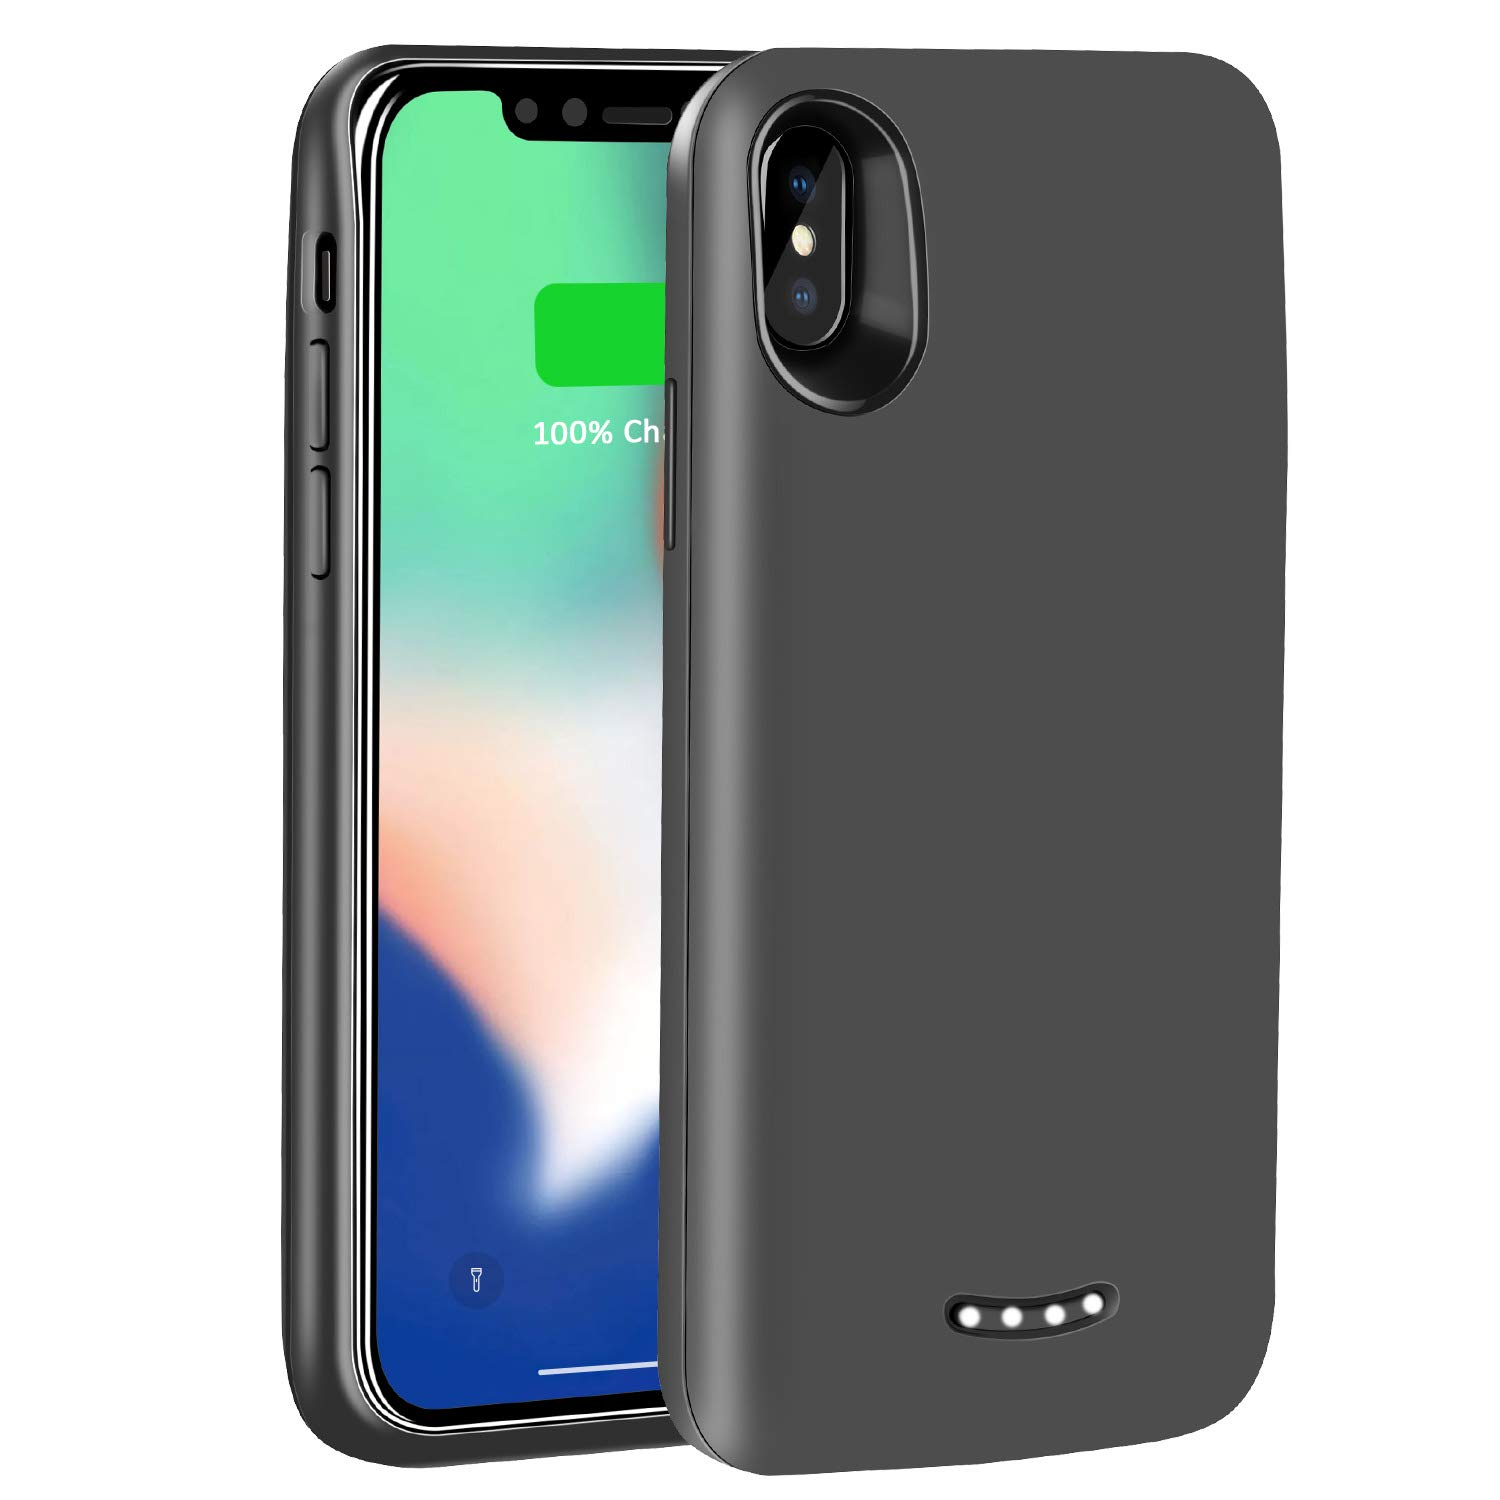 iPhone X Battery Case - Tech Care 6000mAh Portable Charging Case Rechargeable Protective Extended Battery Juice Pack for iPhone X 5.8 inch (Black) by Tech Care (Image #1)